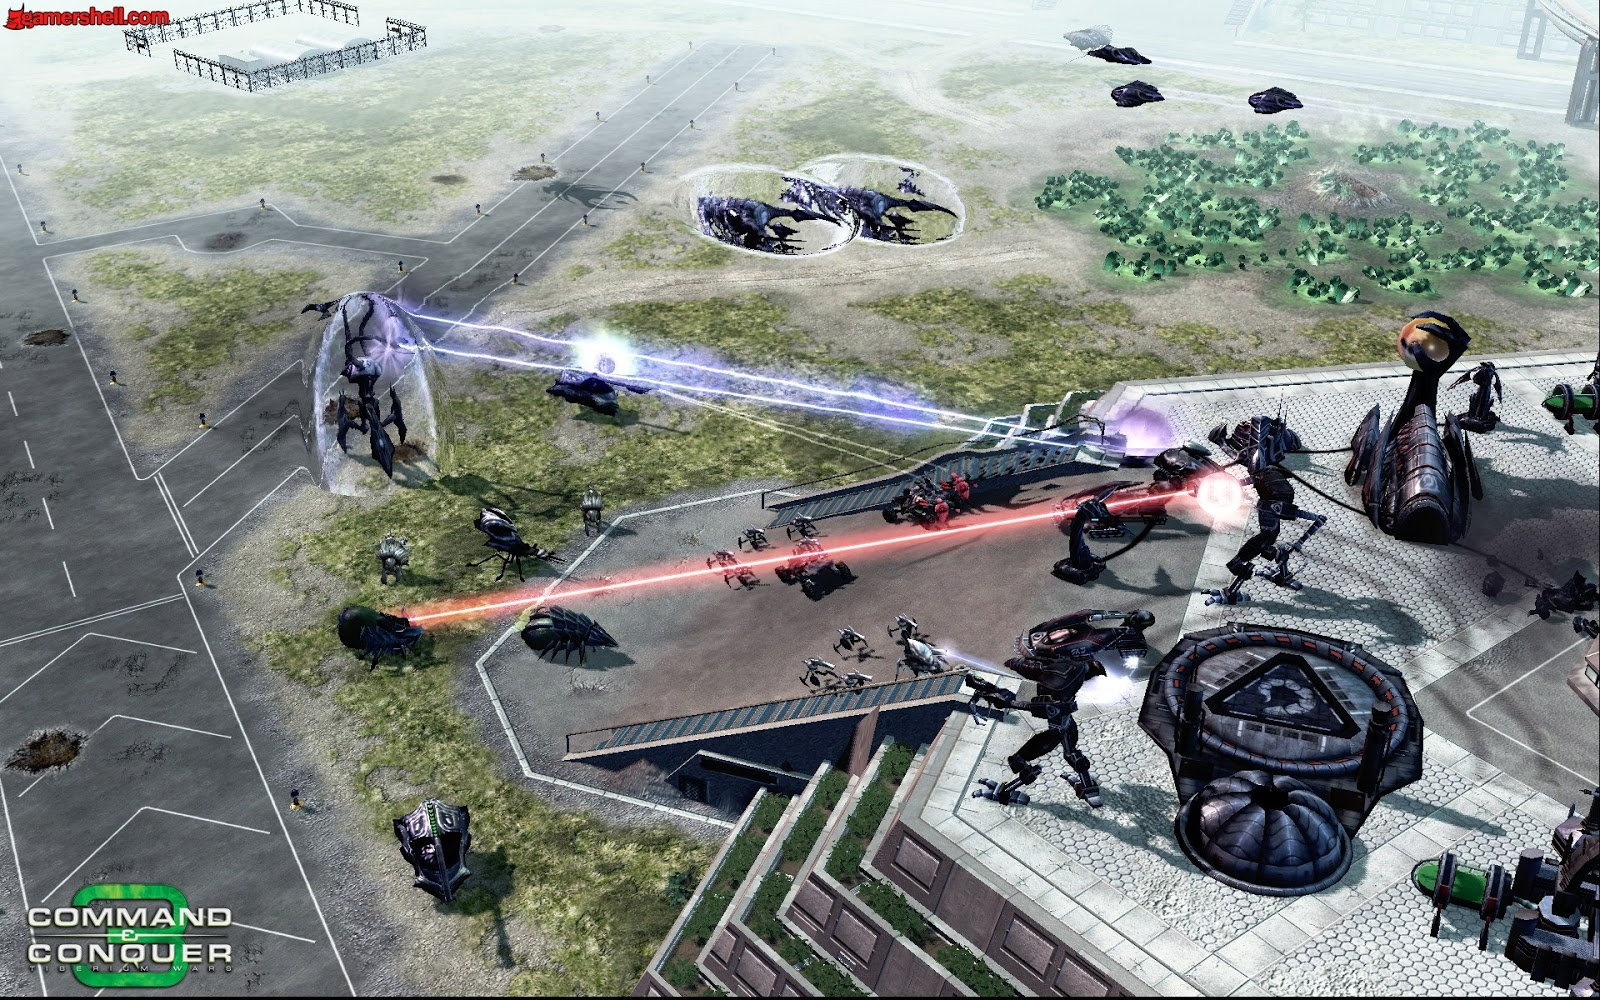 command and conquer 4 free download full game pc